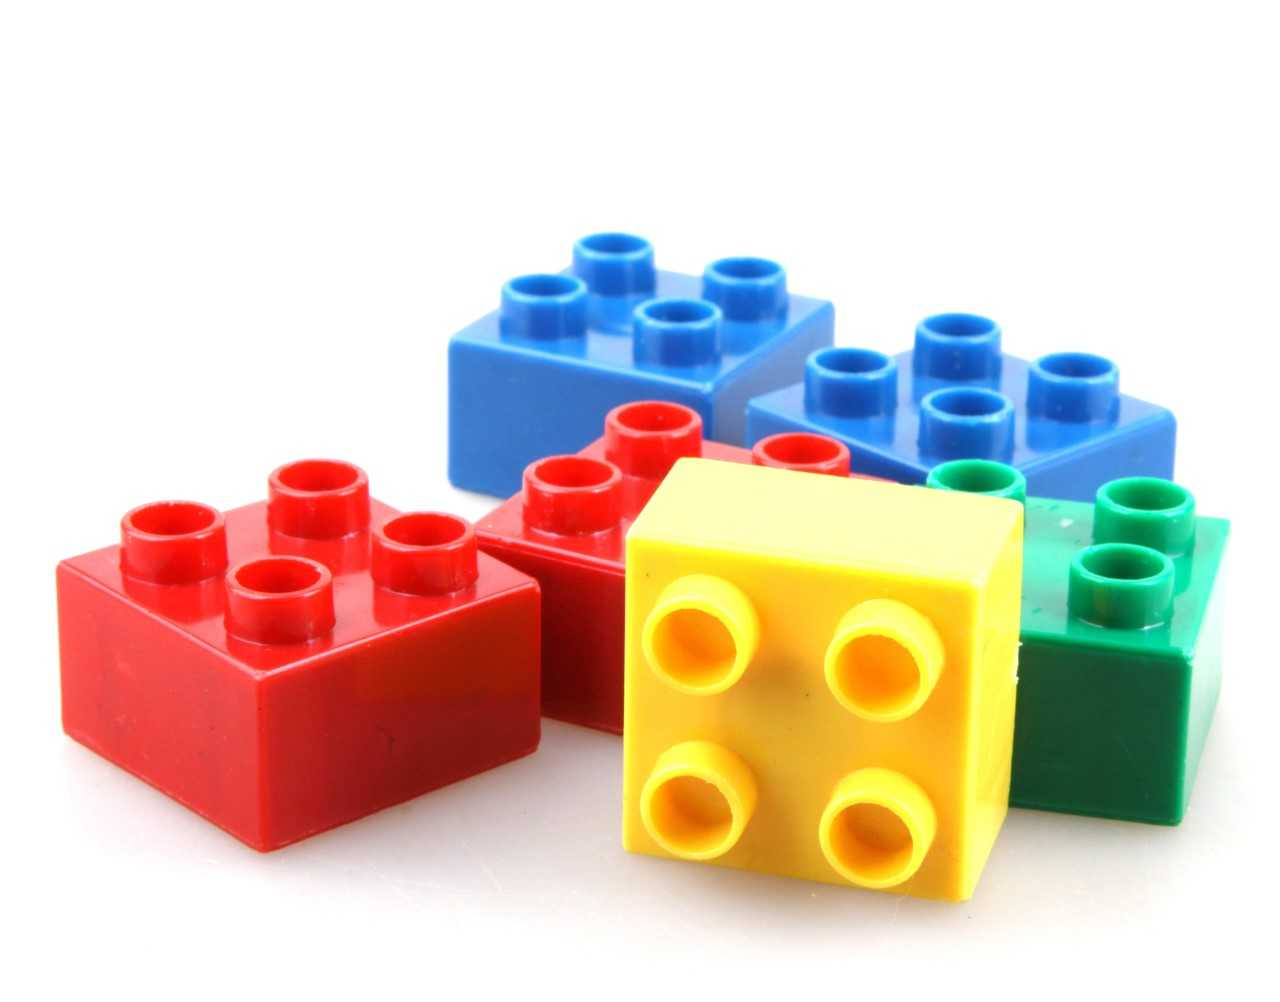 abs material applications - Lego Bricks